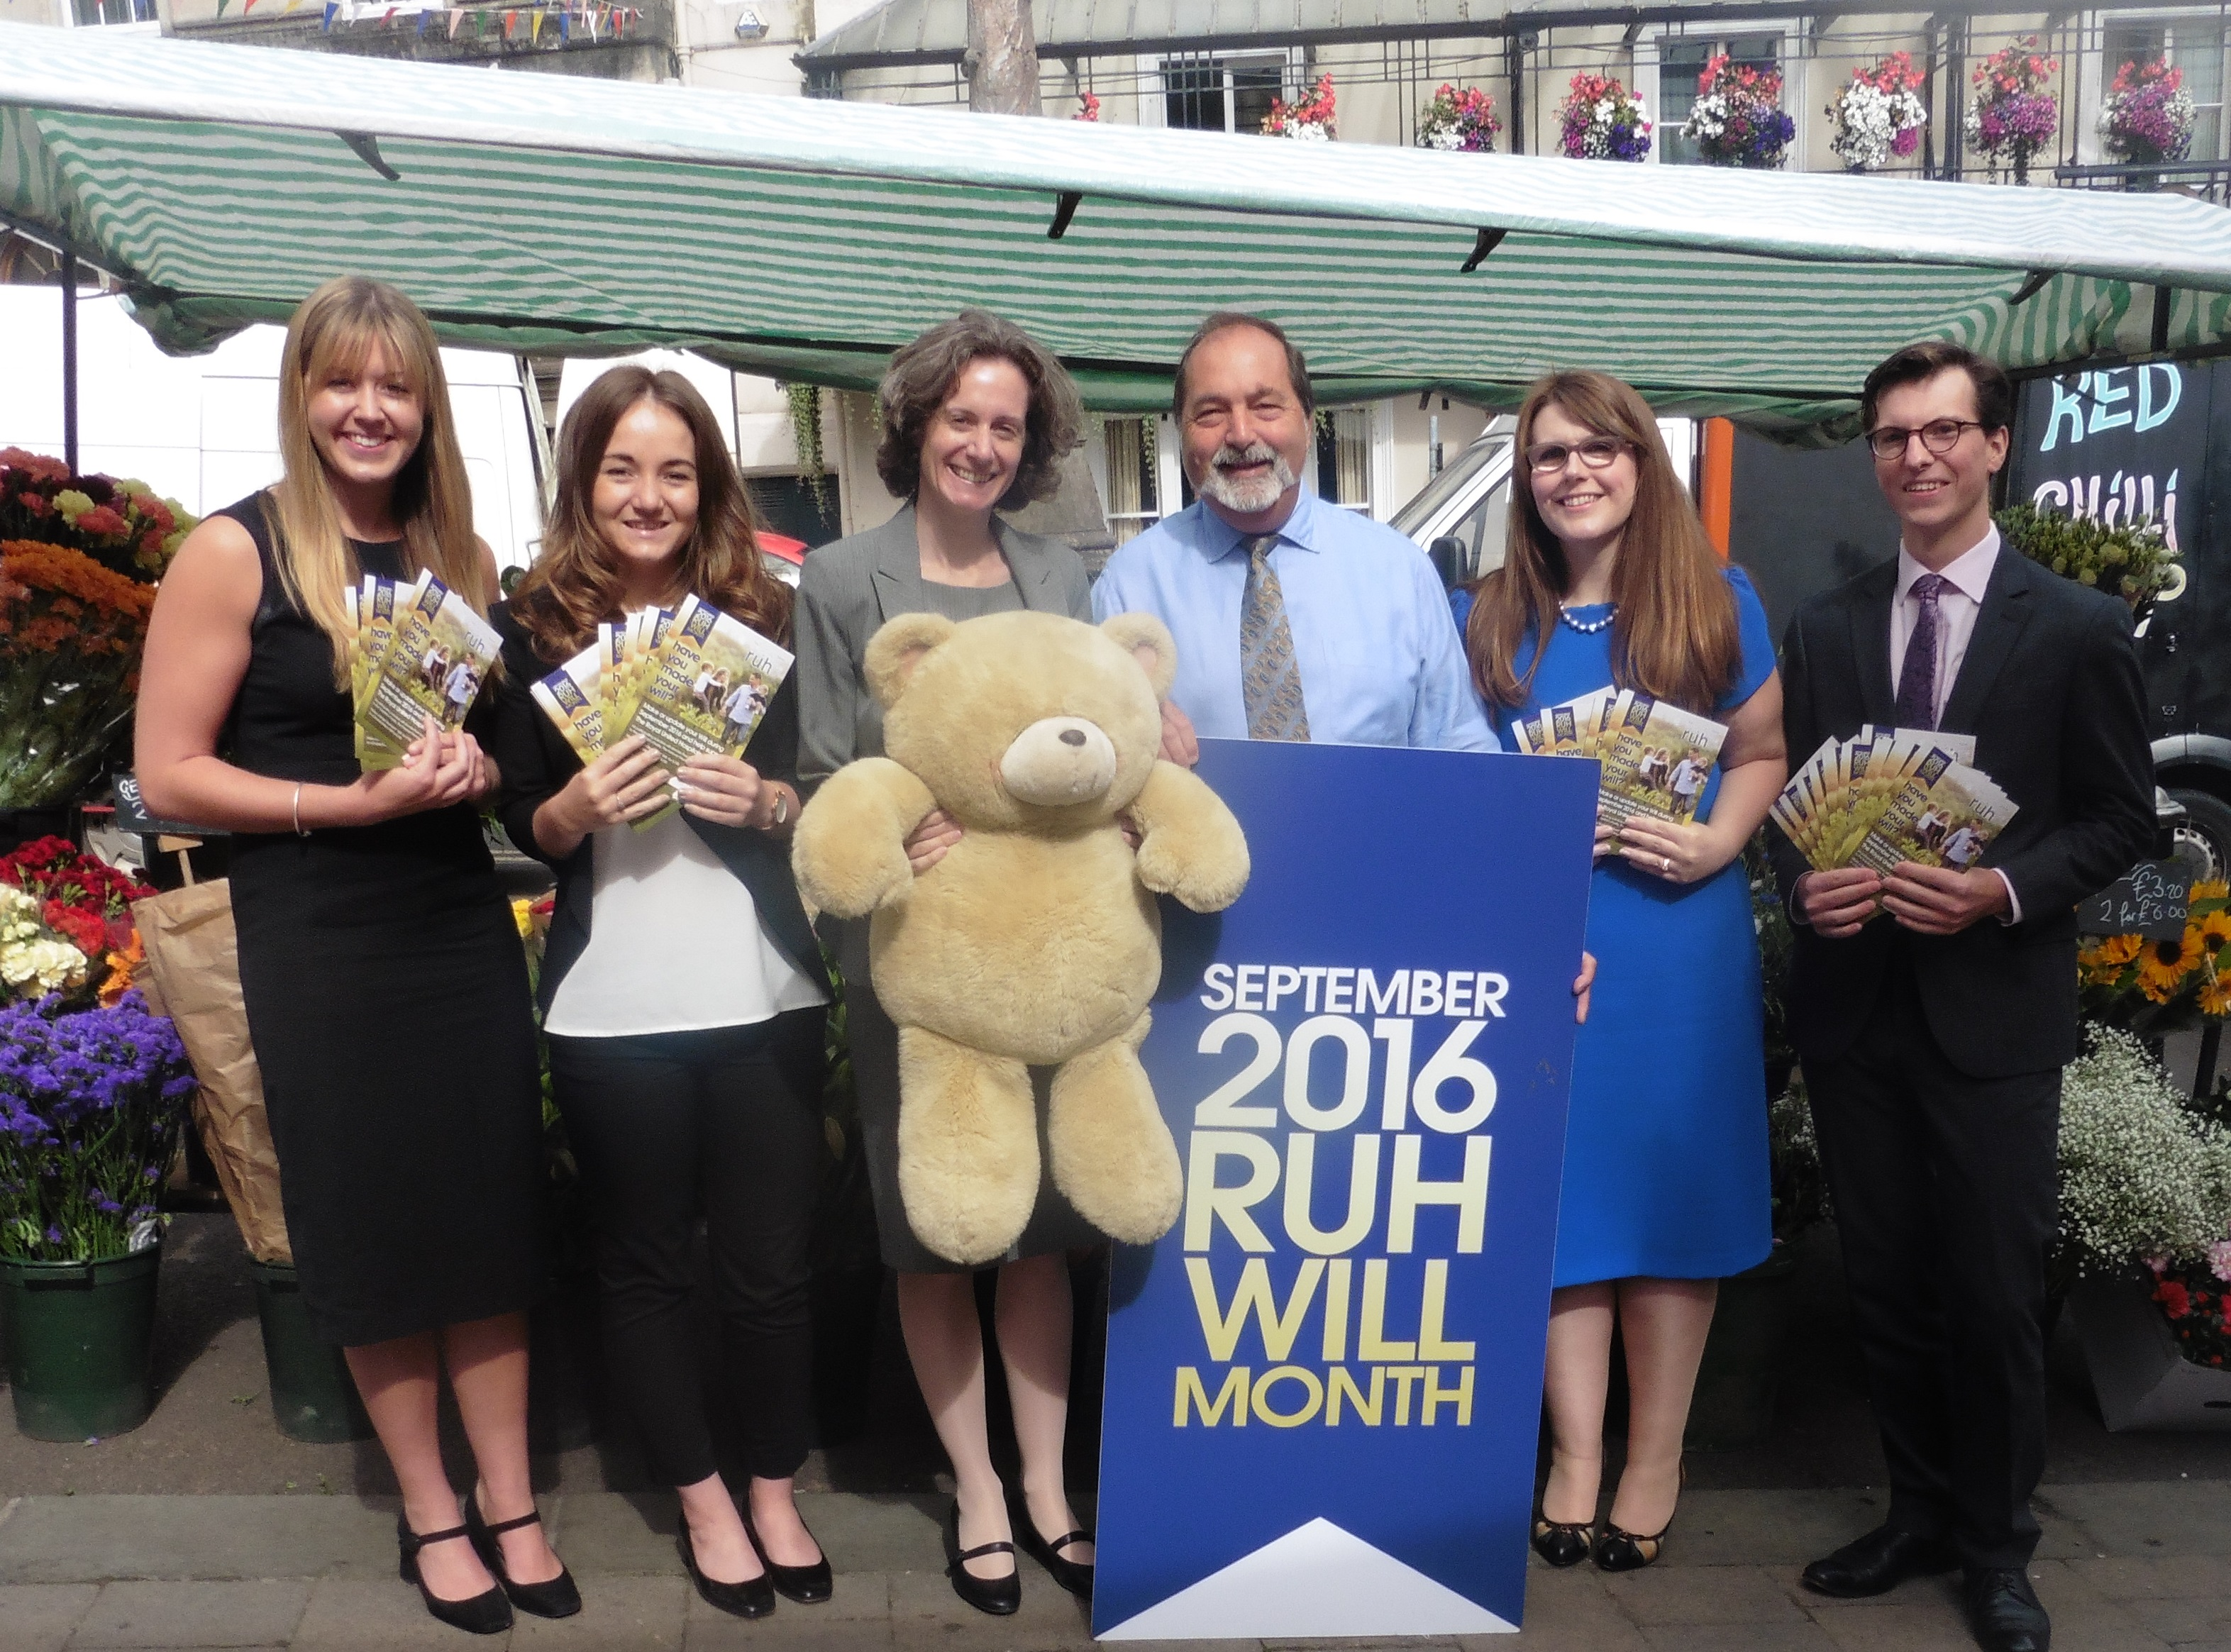 FDC Law raises over Five Thousand Pounds for the RUH